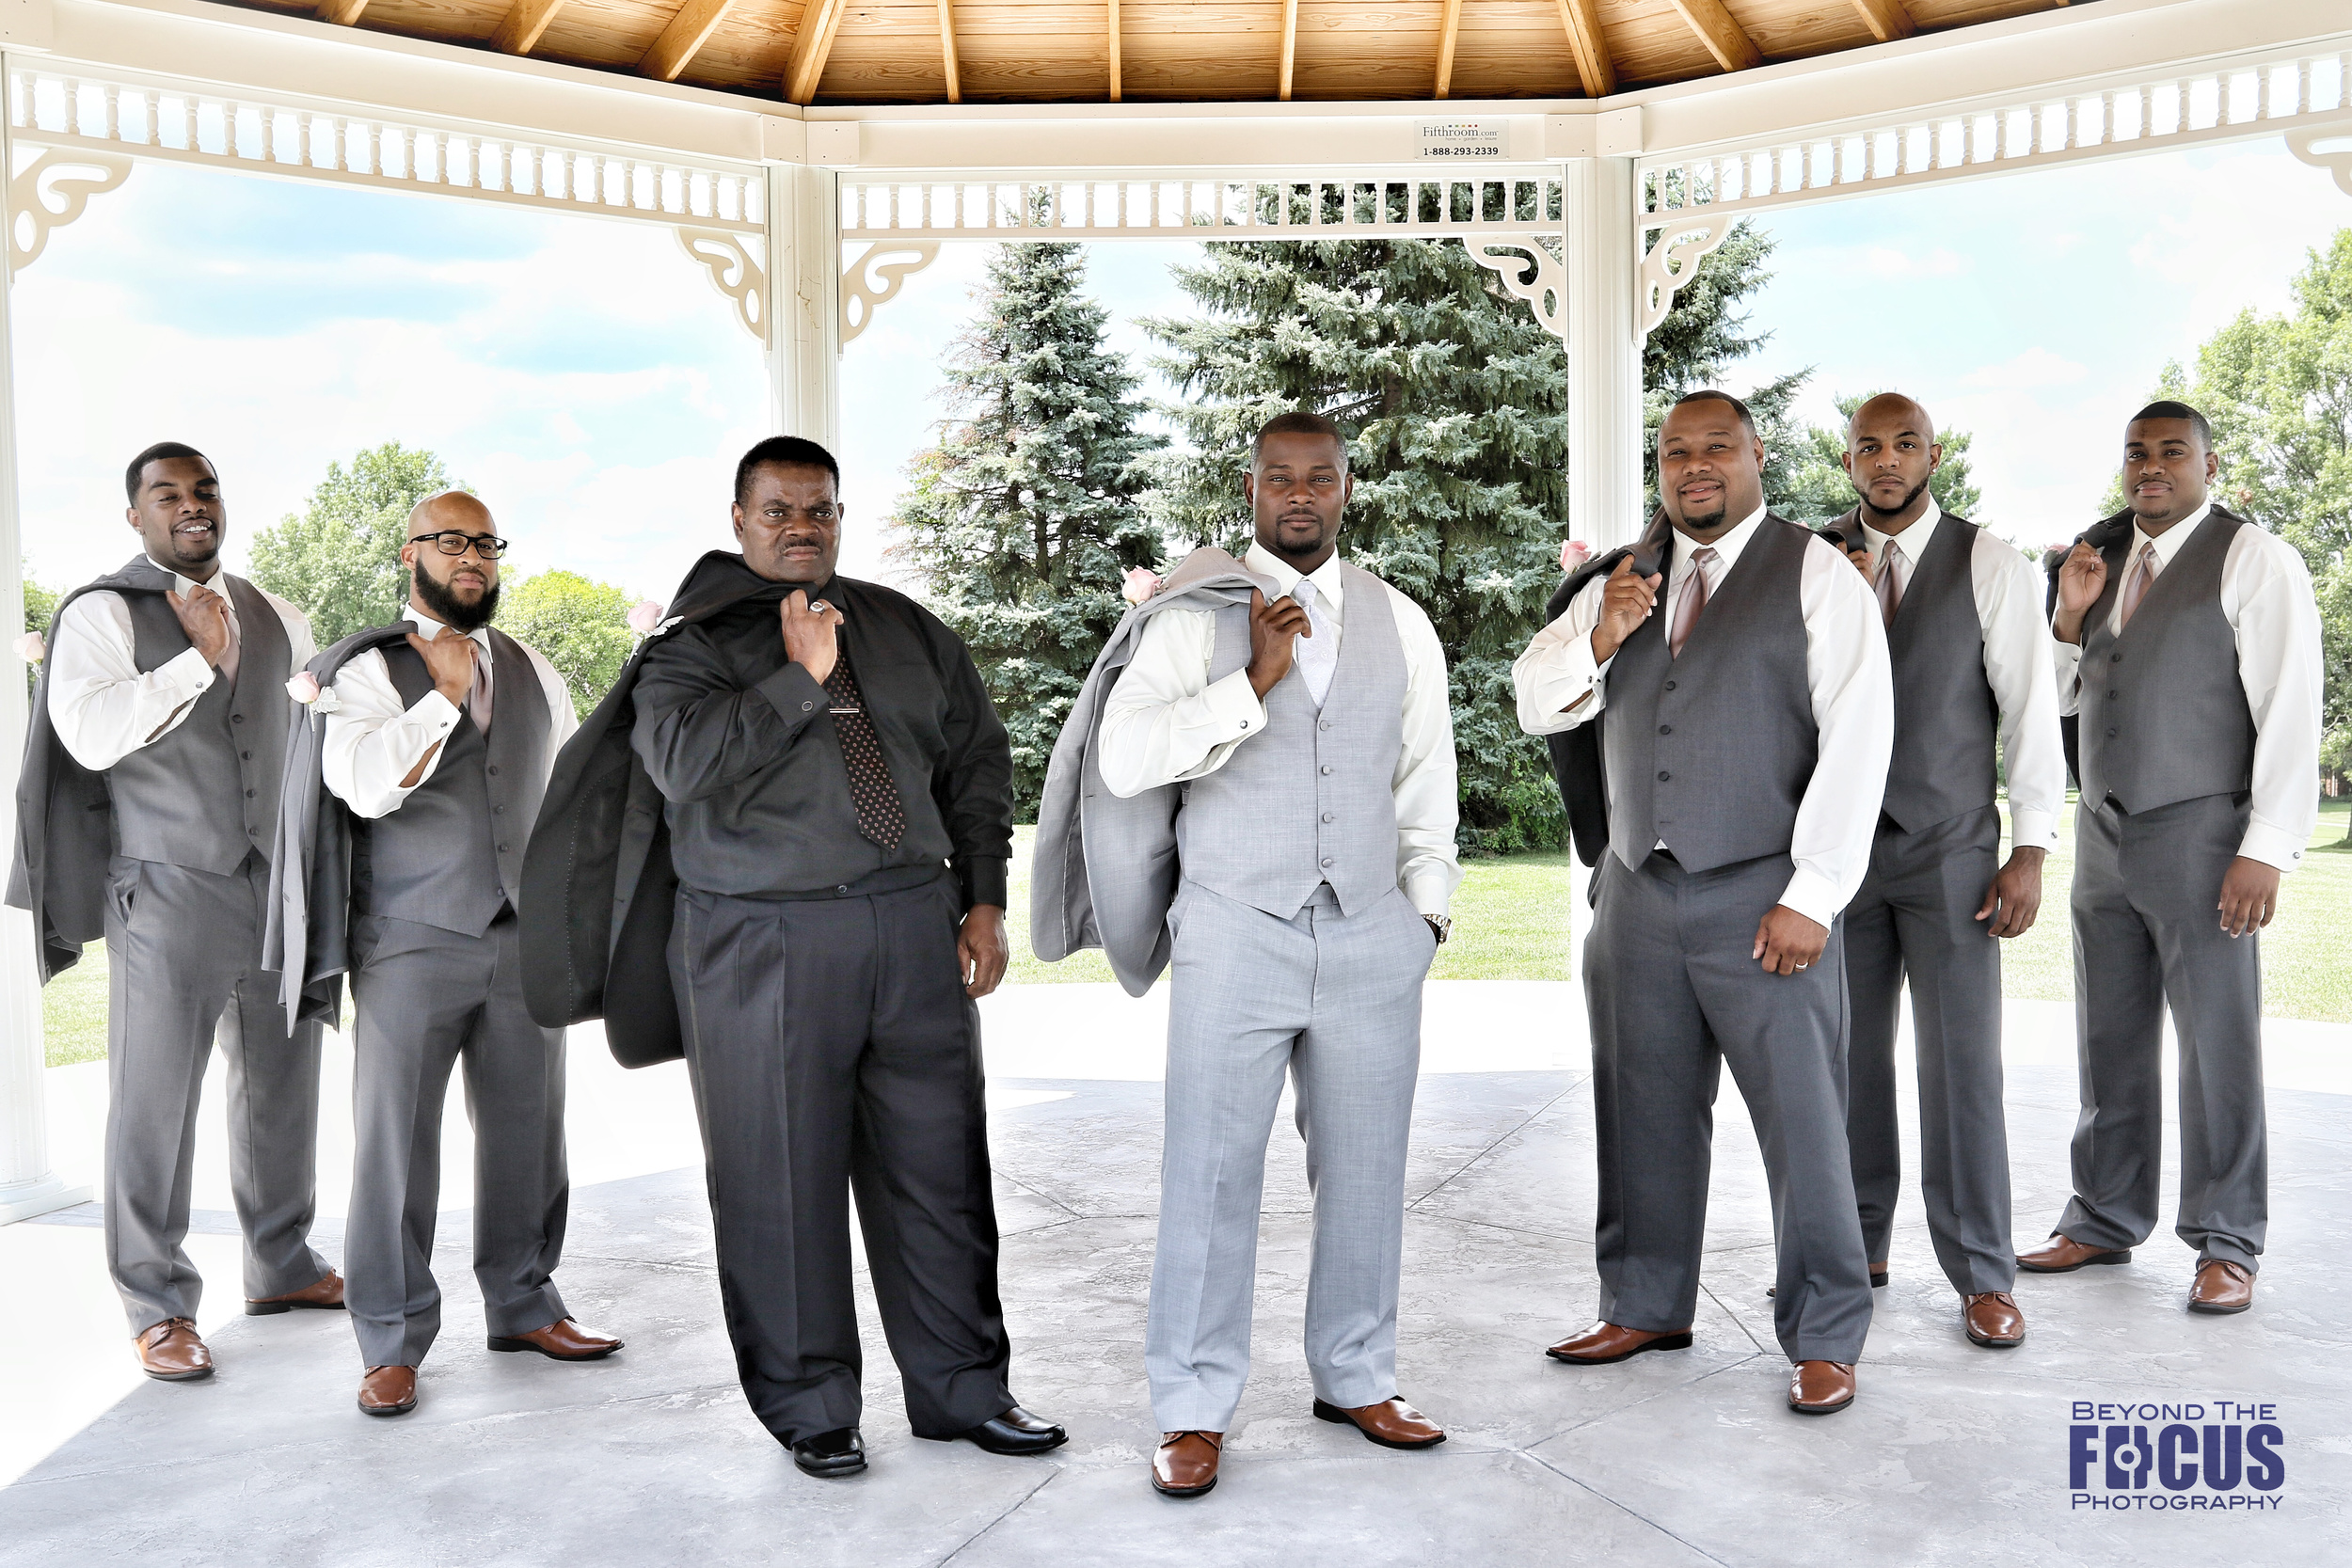 Palmer Wedding - Pre-Wedding Photos Guys17.jpg